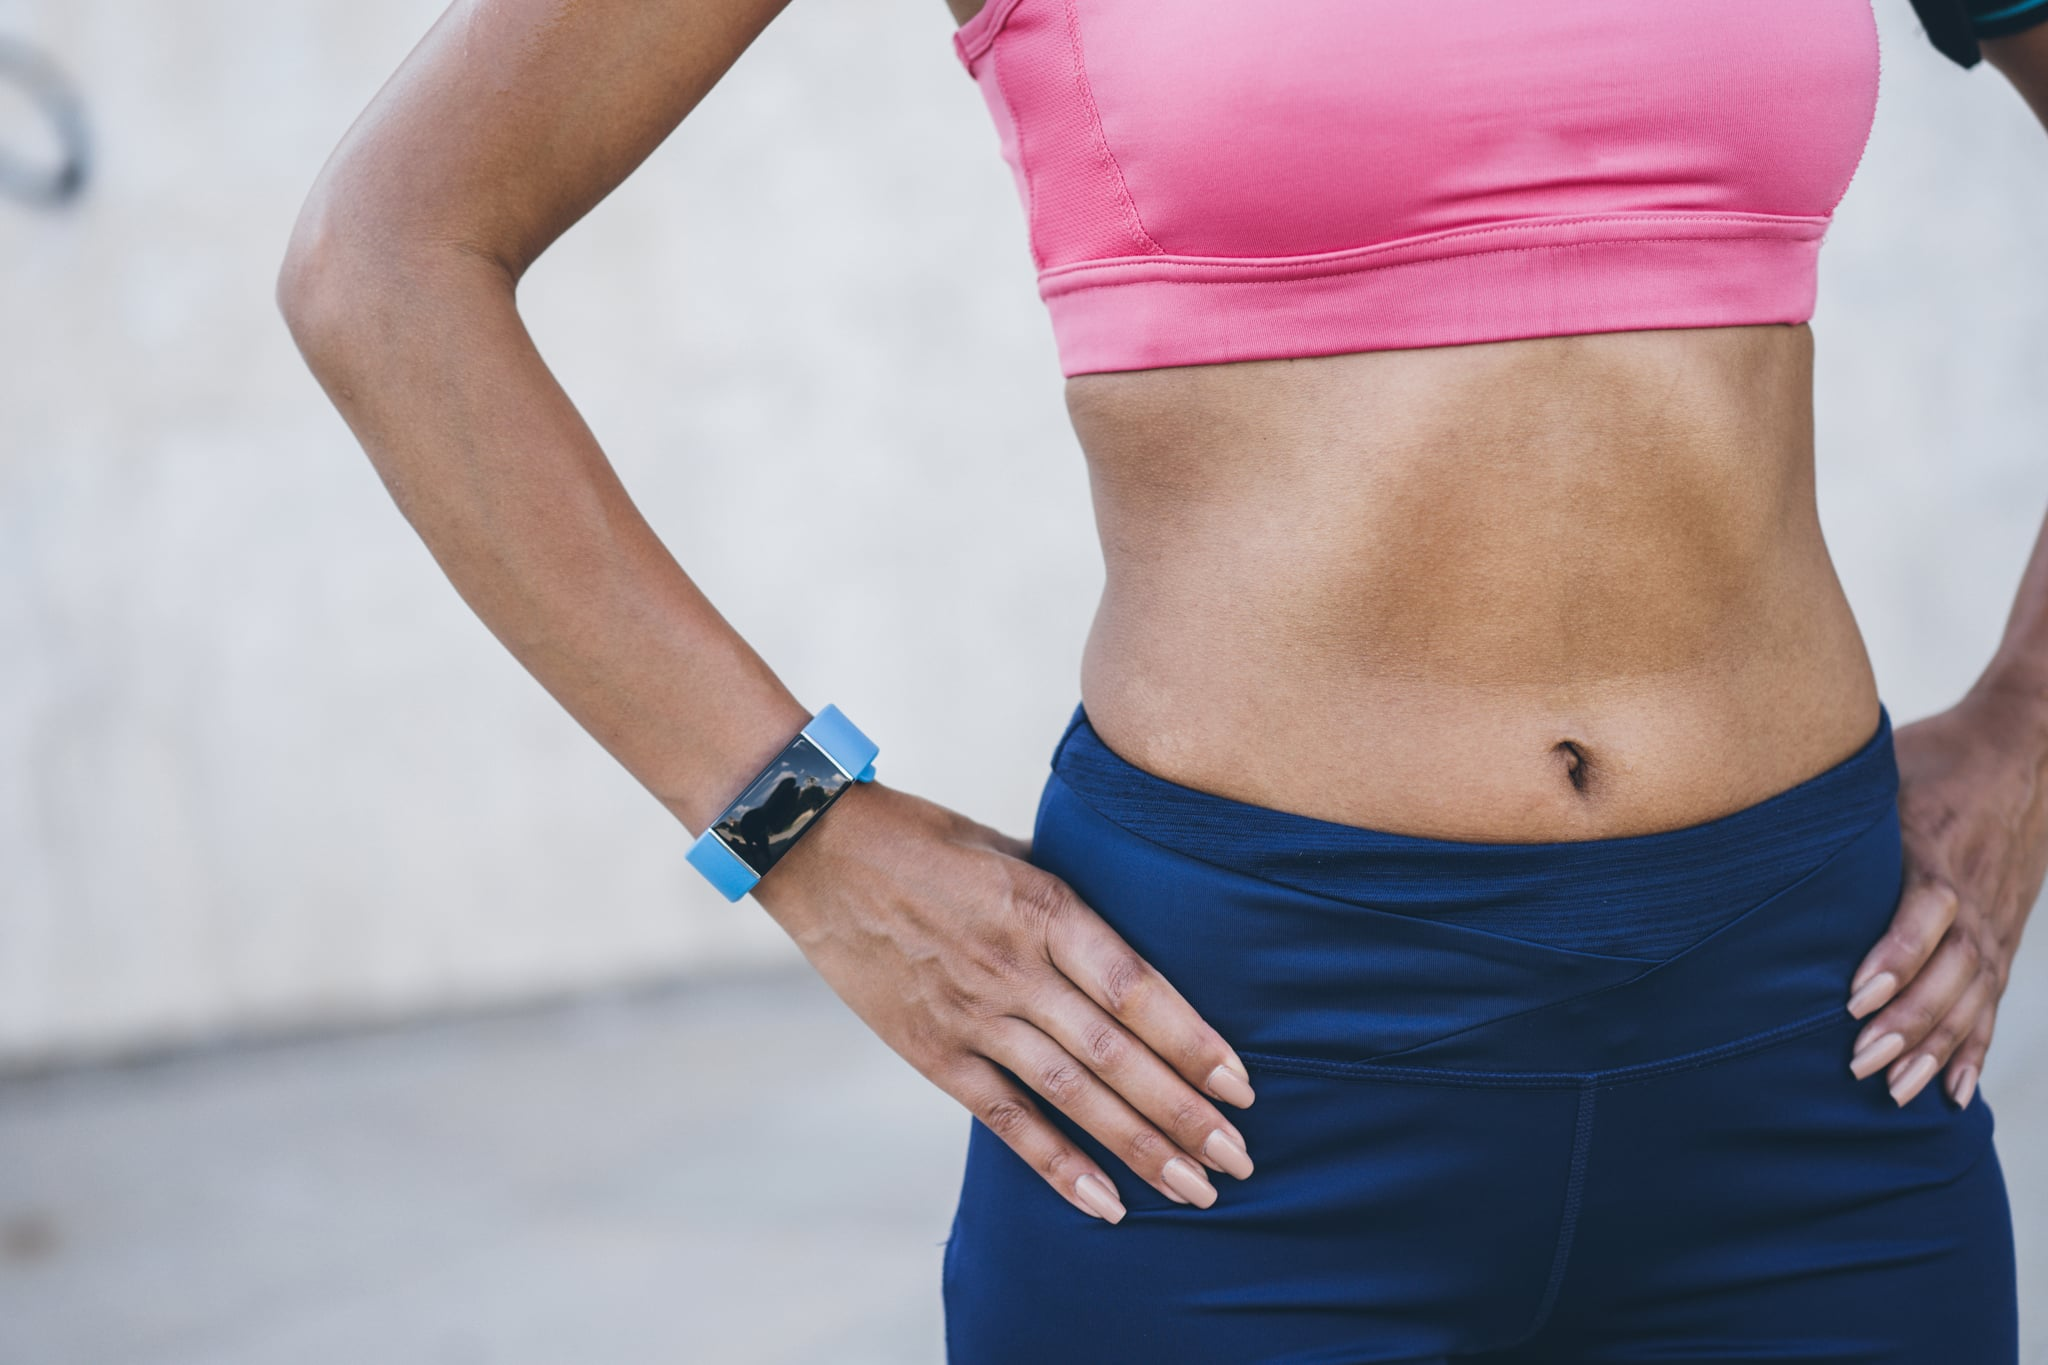 Female athlete with her hands on hips wearing smart watch